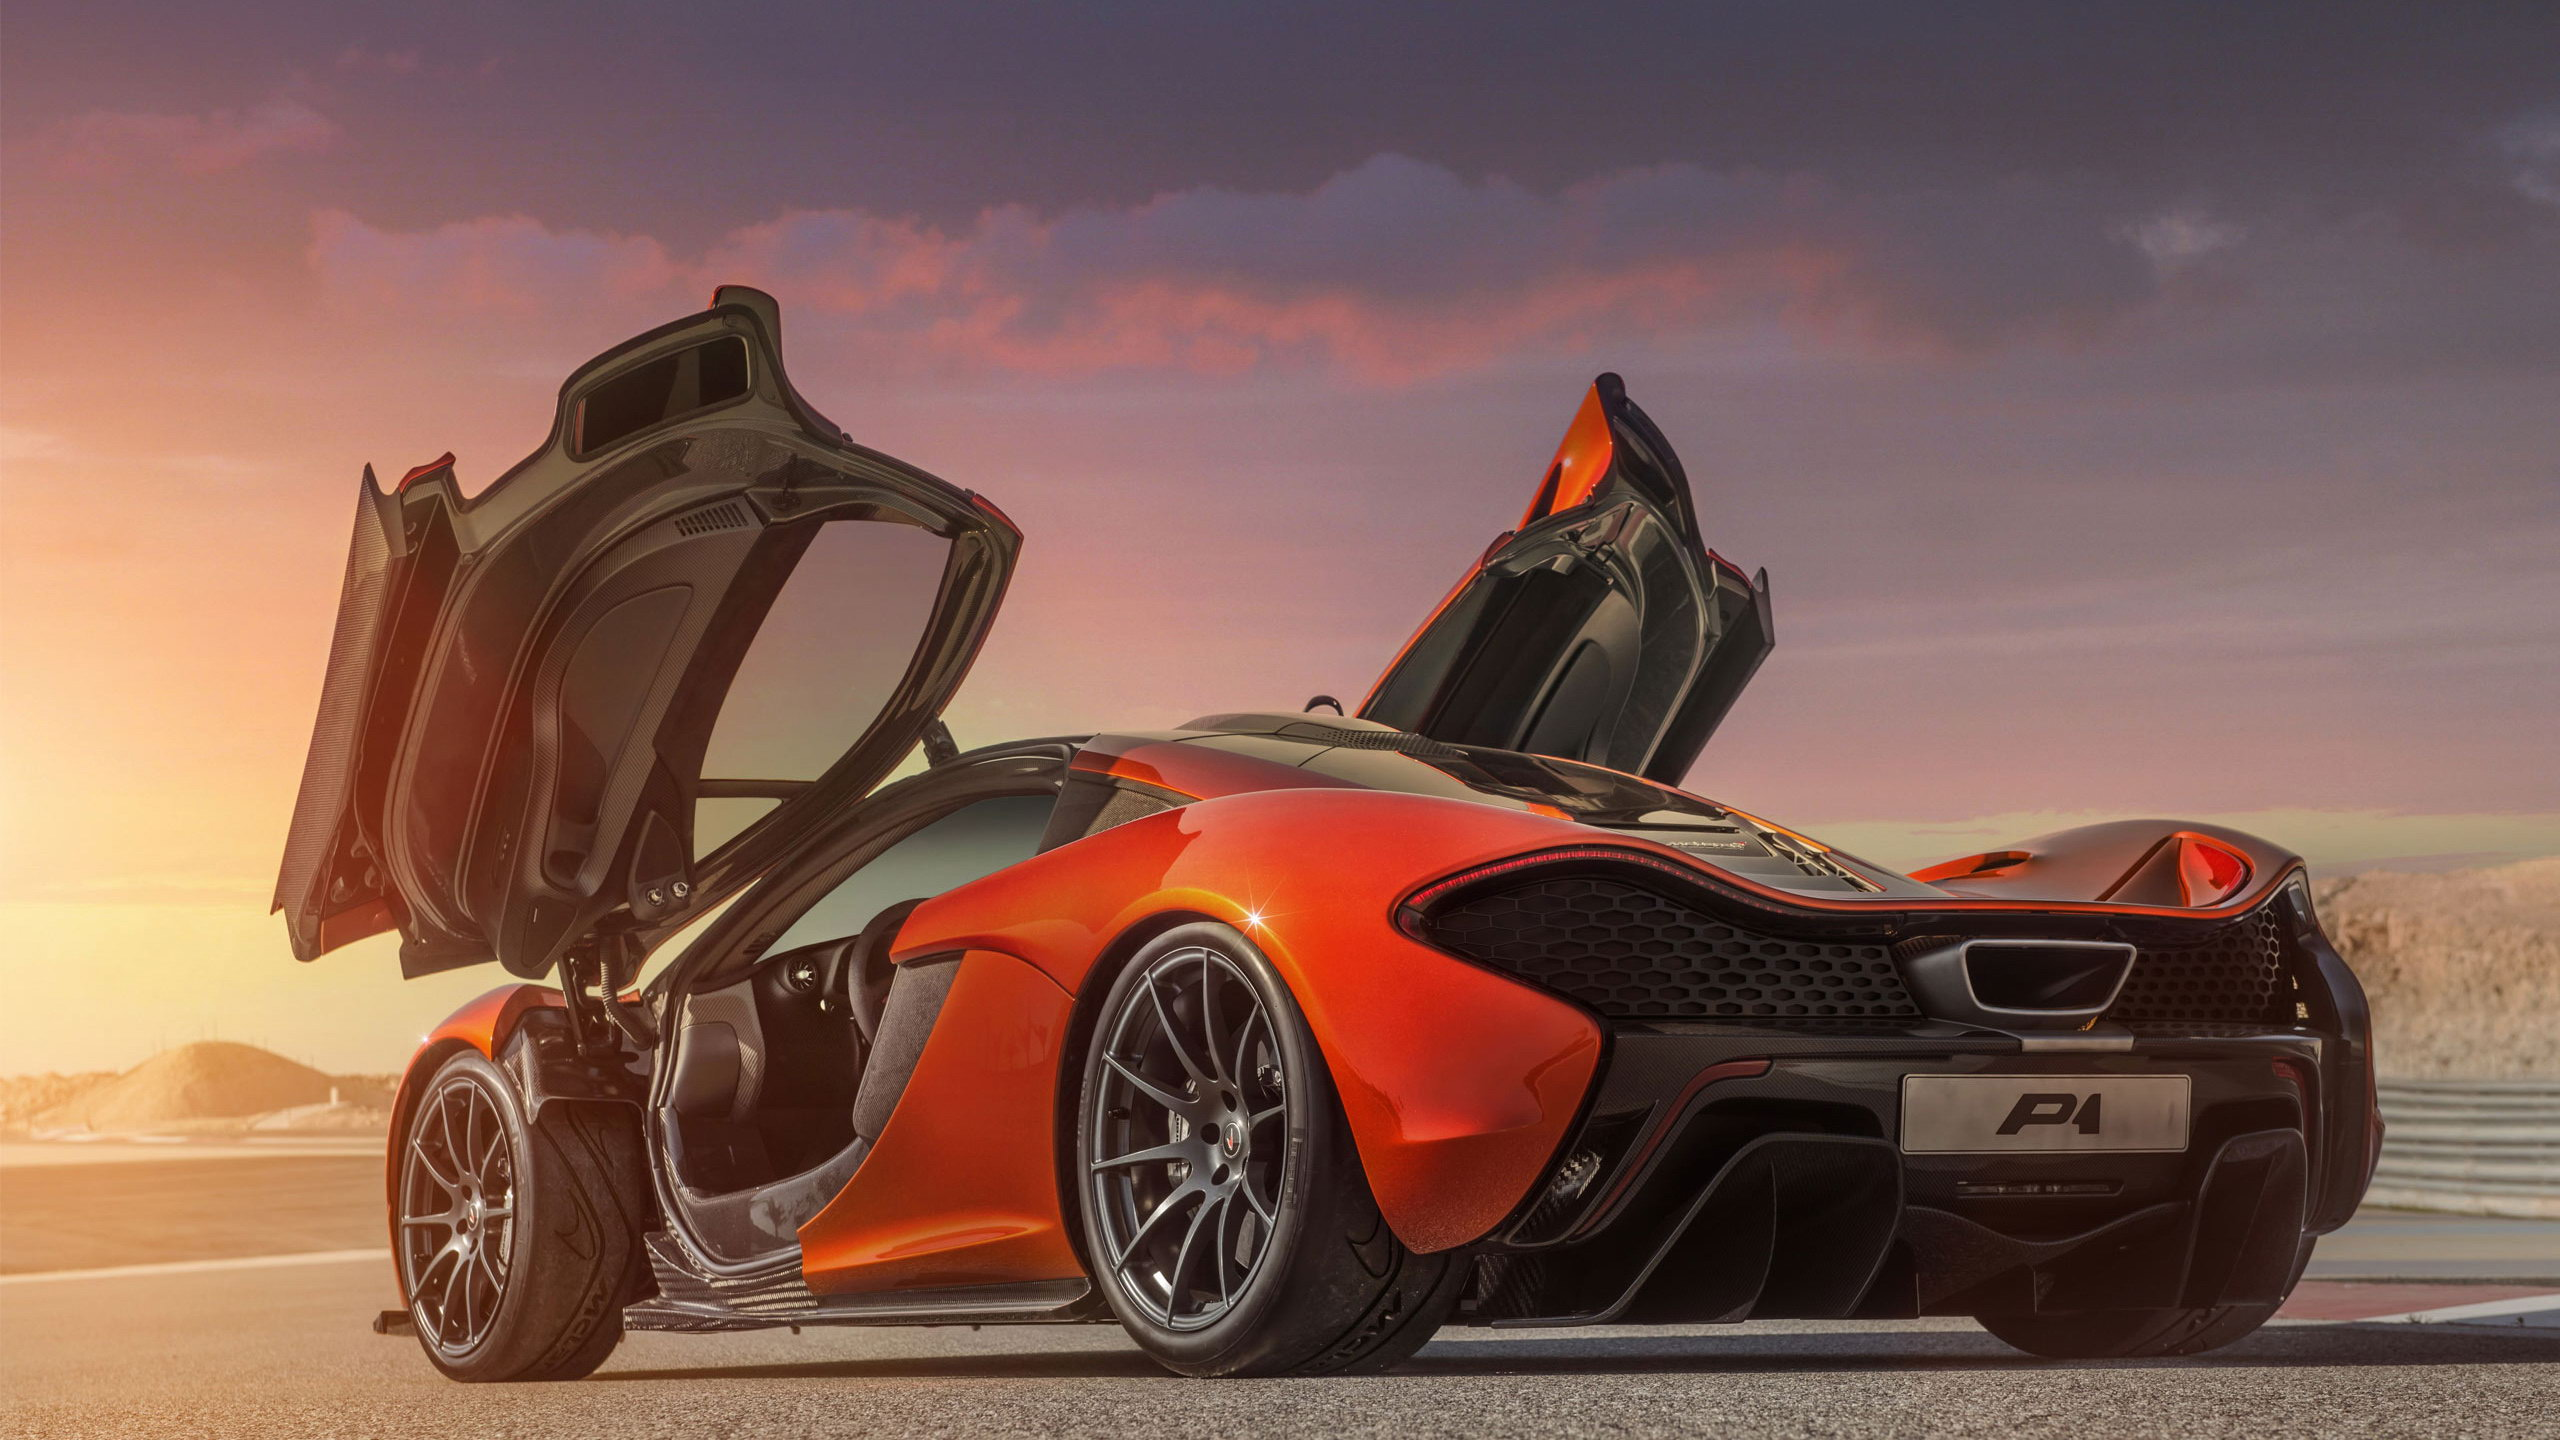 Cool-2014-McLaren-P1-Concept-sports-car-wallpapers